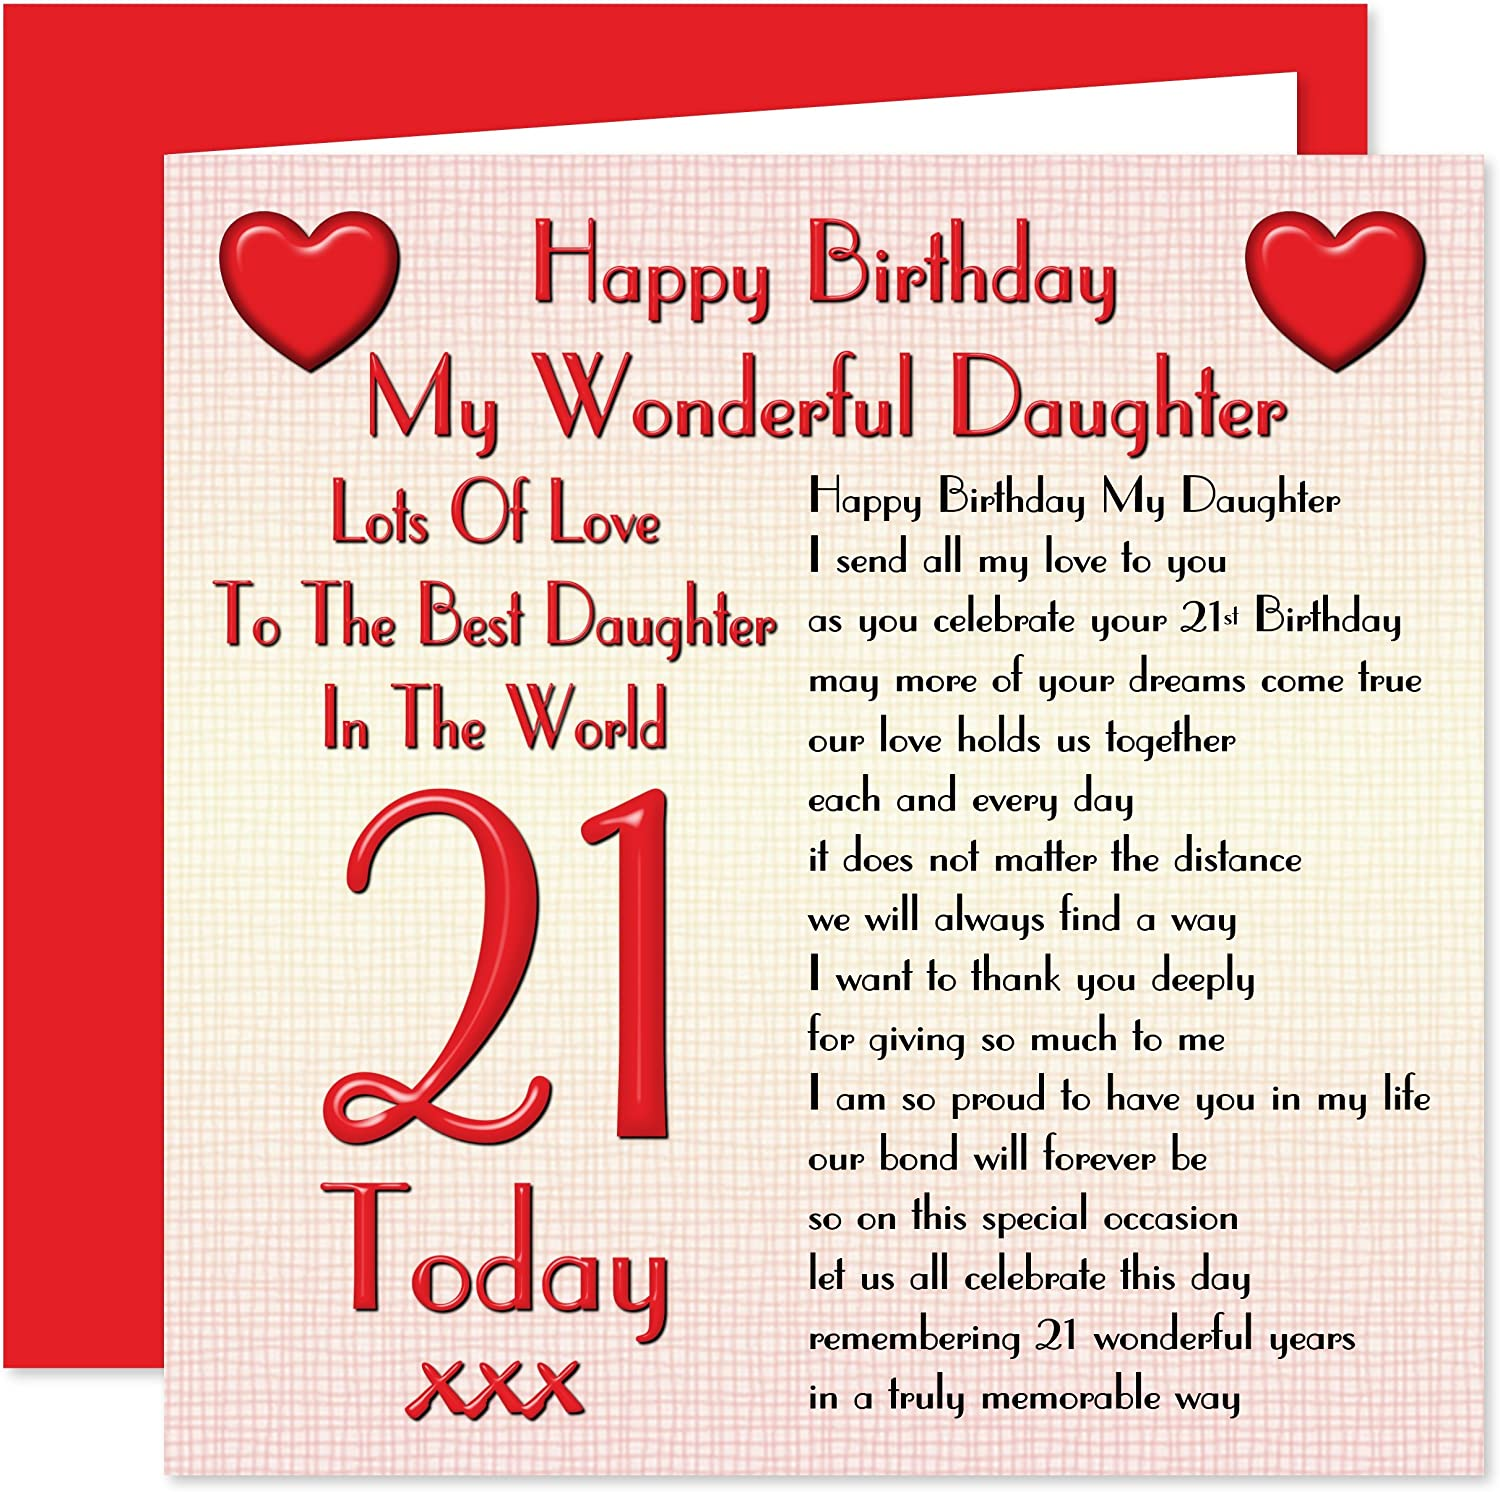 Daughter 21st Happy Birthday Card Lots Of Love To The Best Daughter In The World 21 Today Amazon Co Uk Office Products